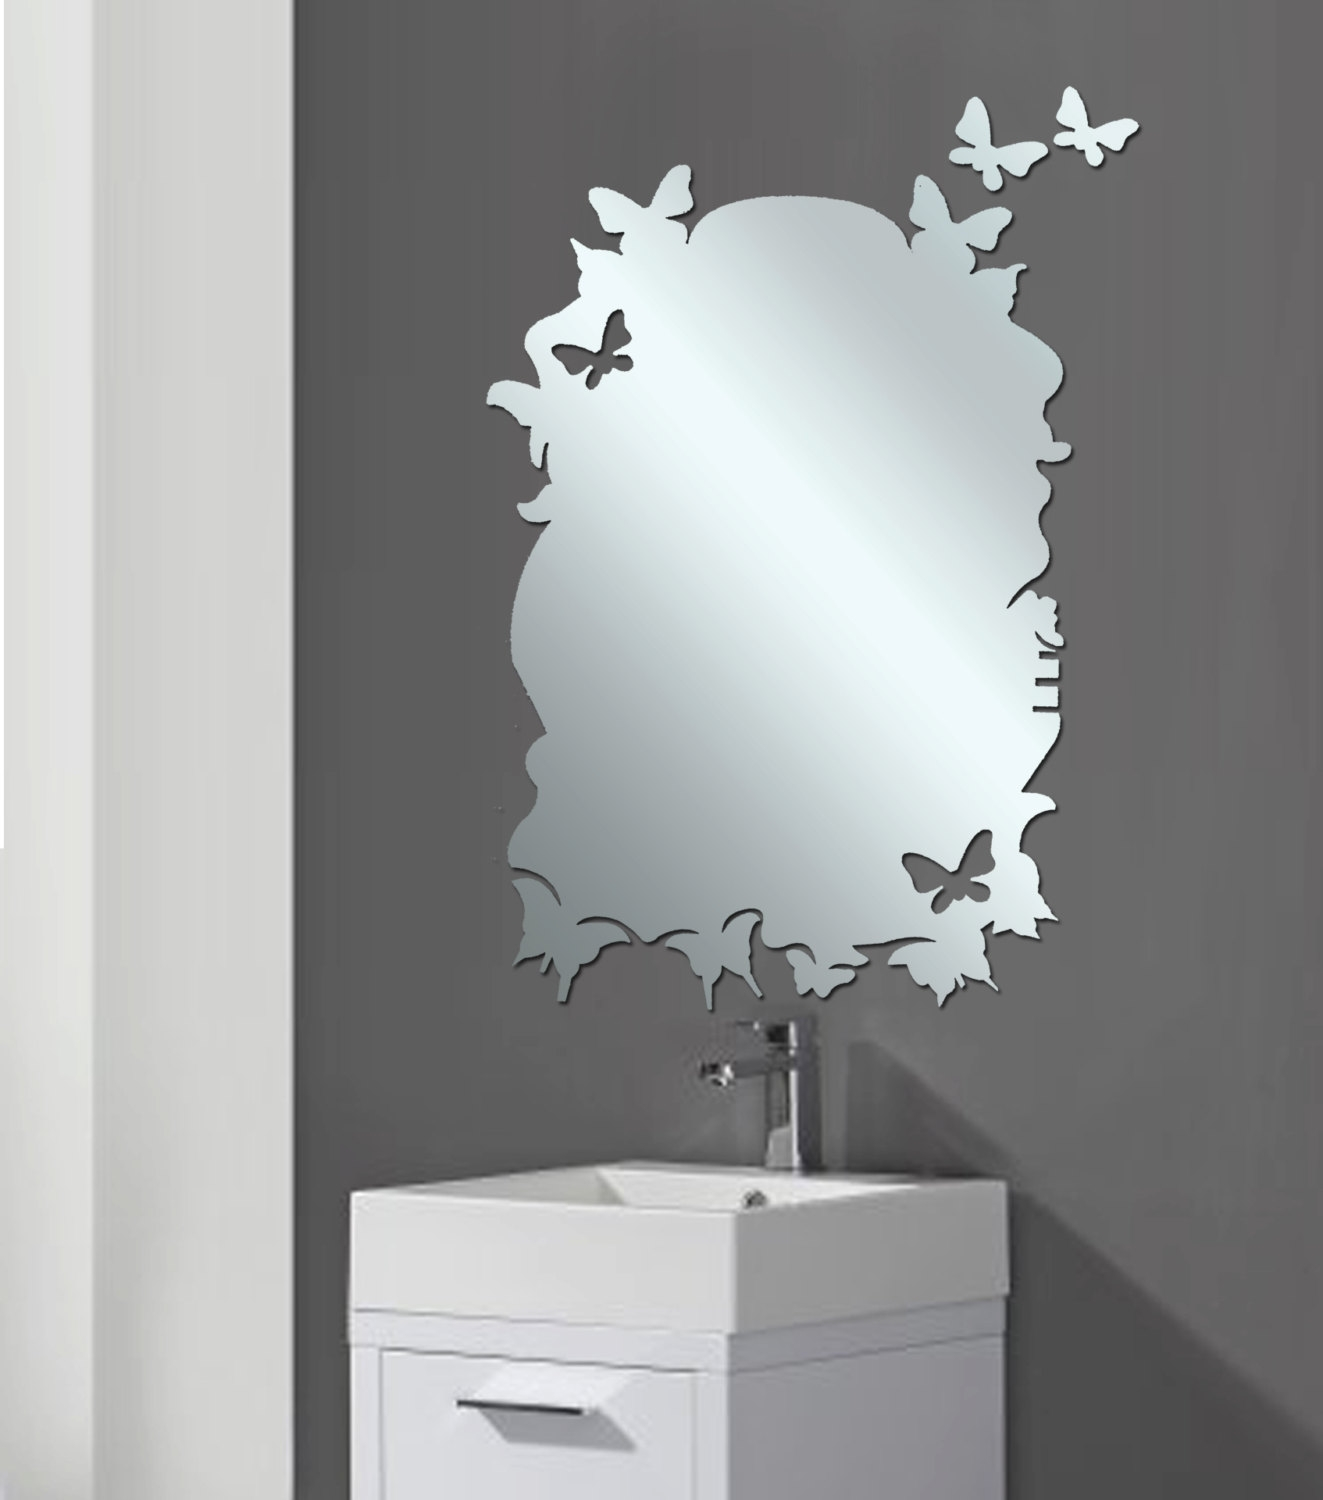 Mirror Butterfly Wall Decor Interesting To See The 3d Butterfly Intended For Butterfly Wall Mirror (Image 10 of 15)